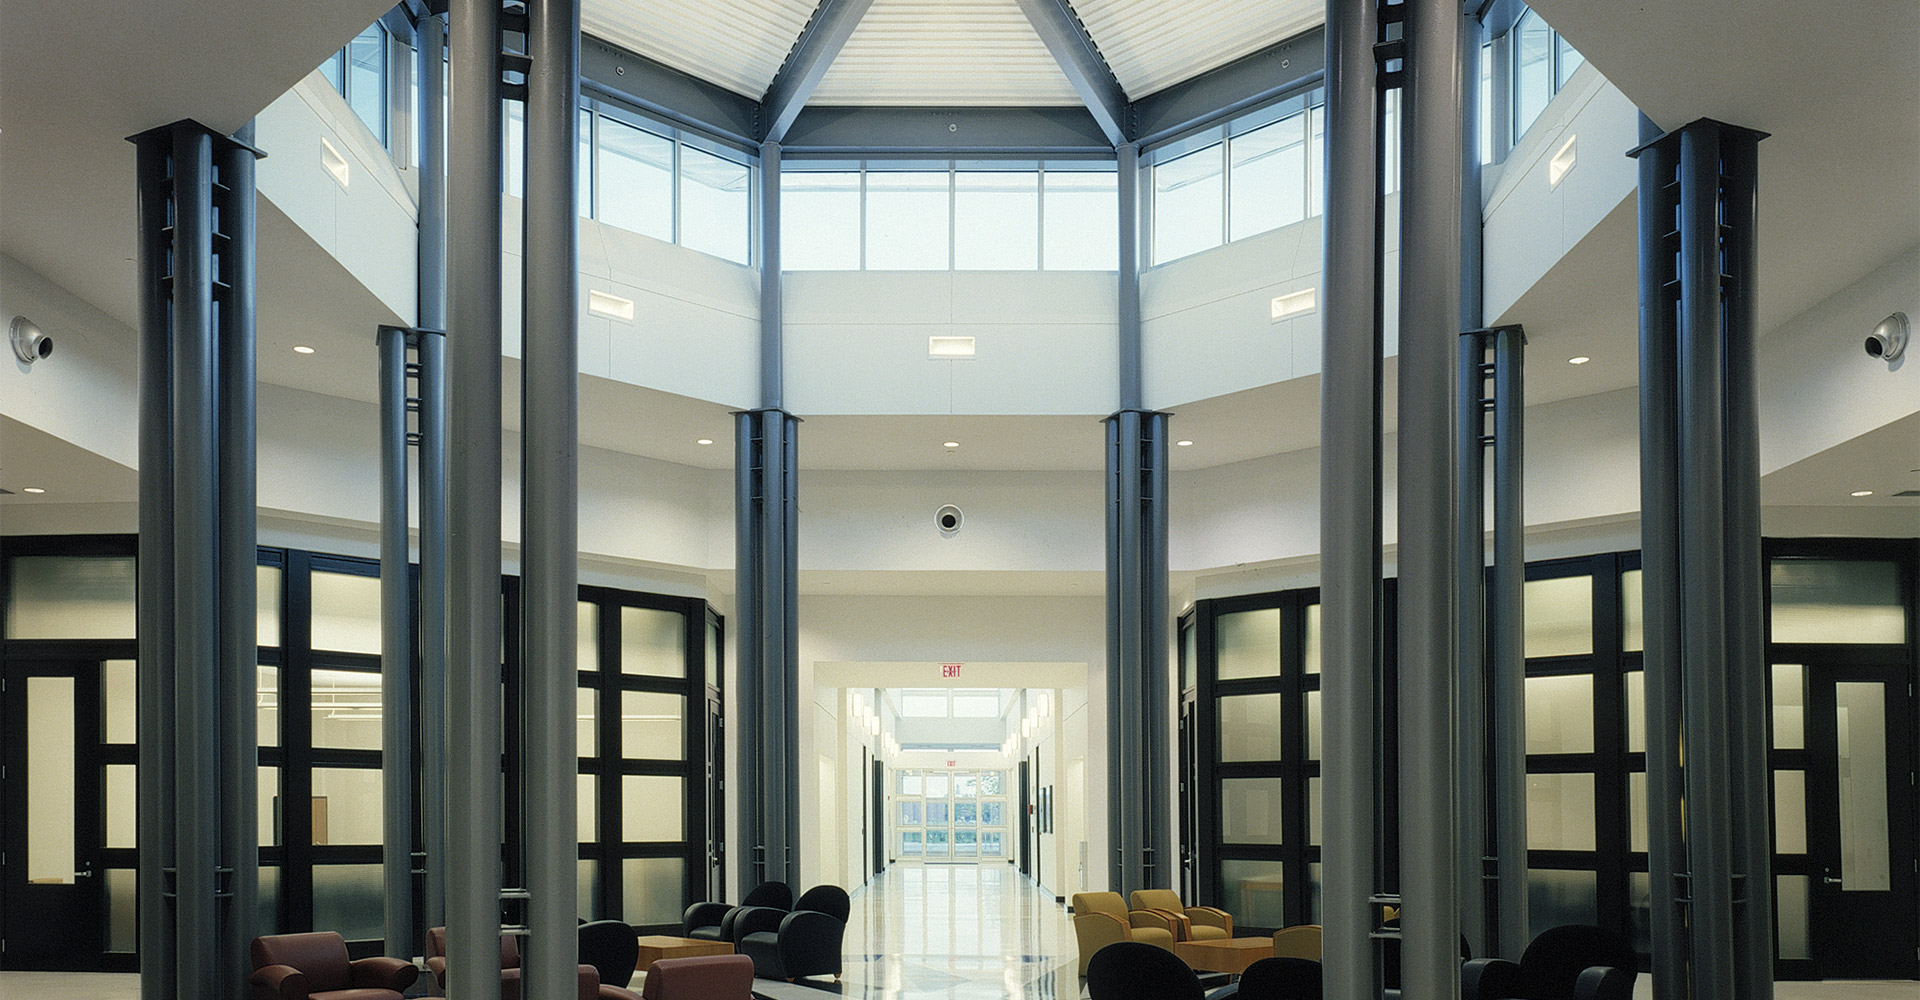 Interior rotunda - ADT building.